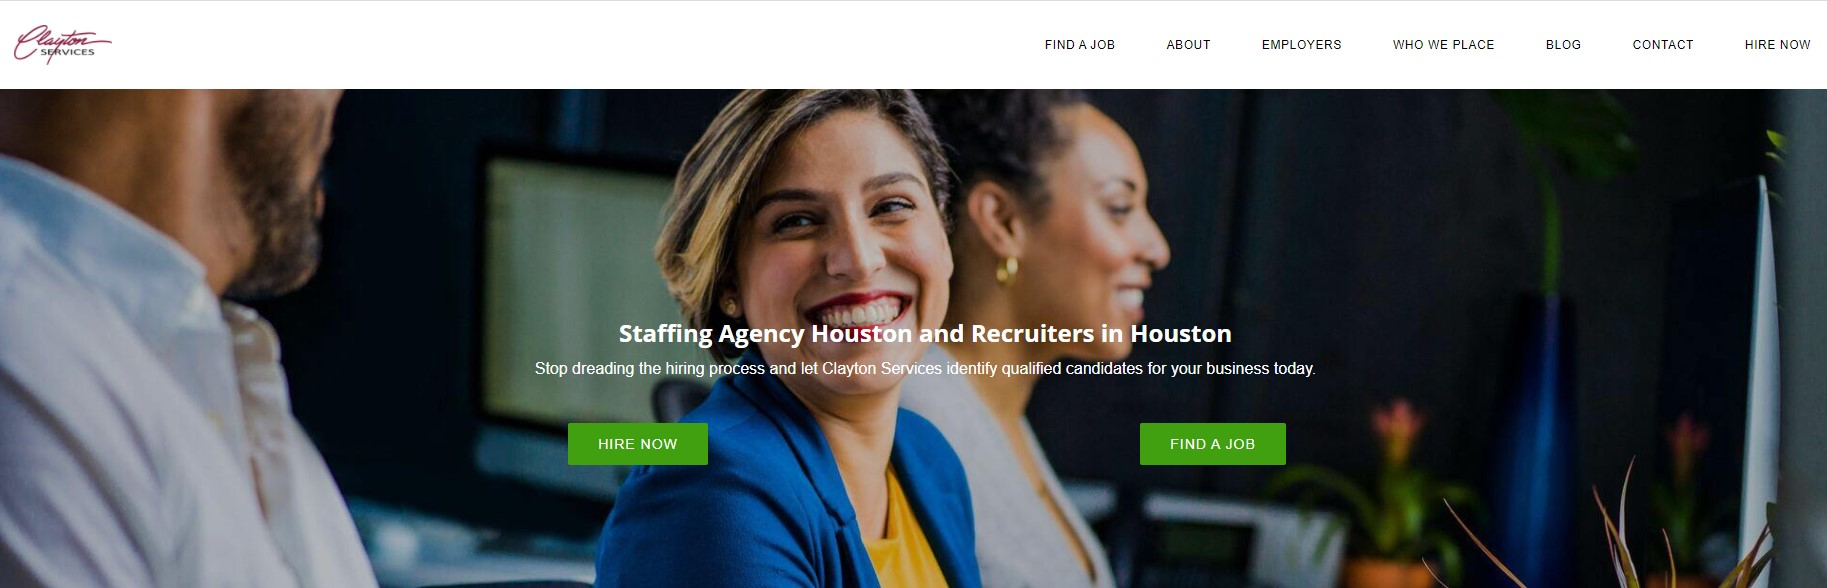 Clayton Services - Best Staffing Agency